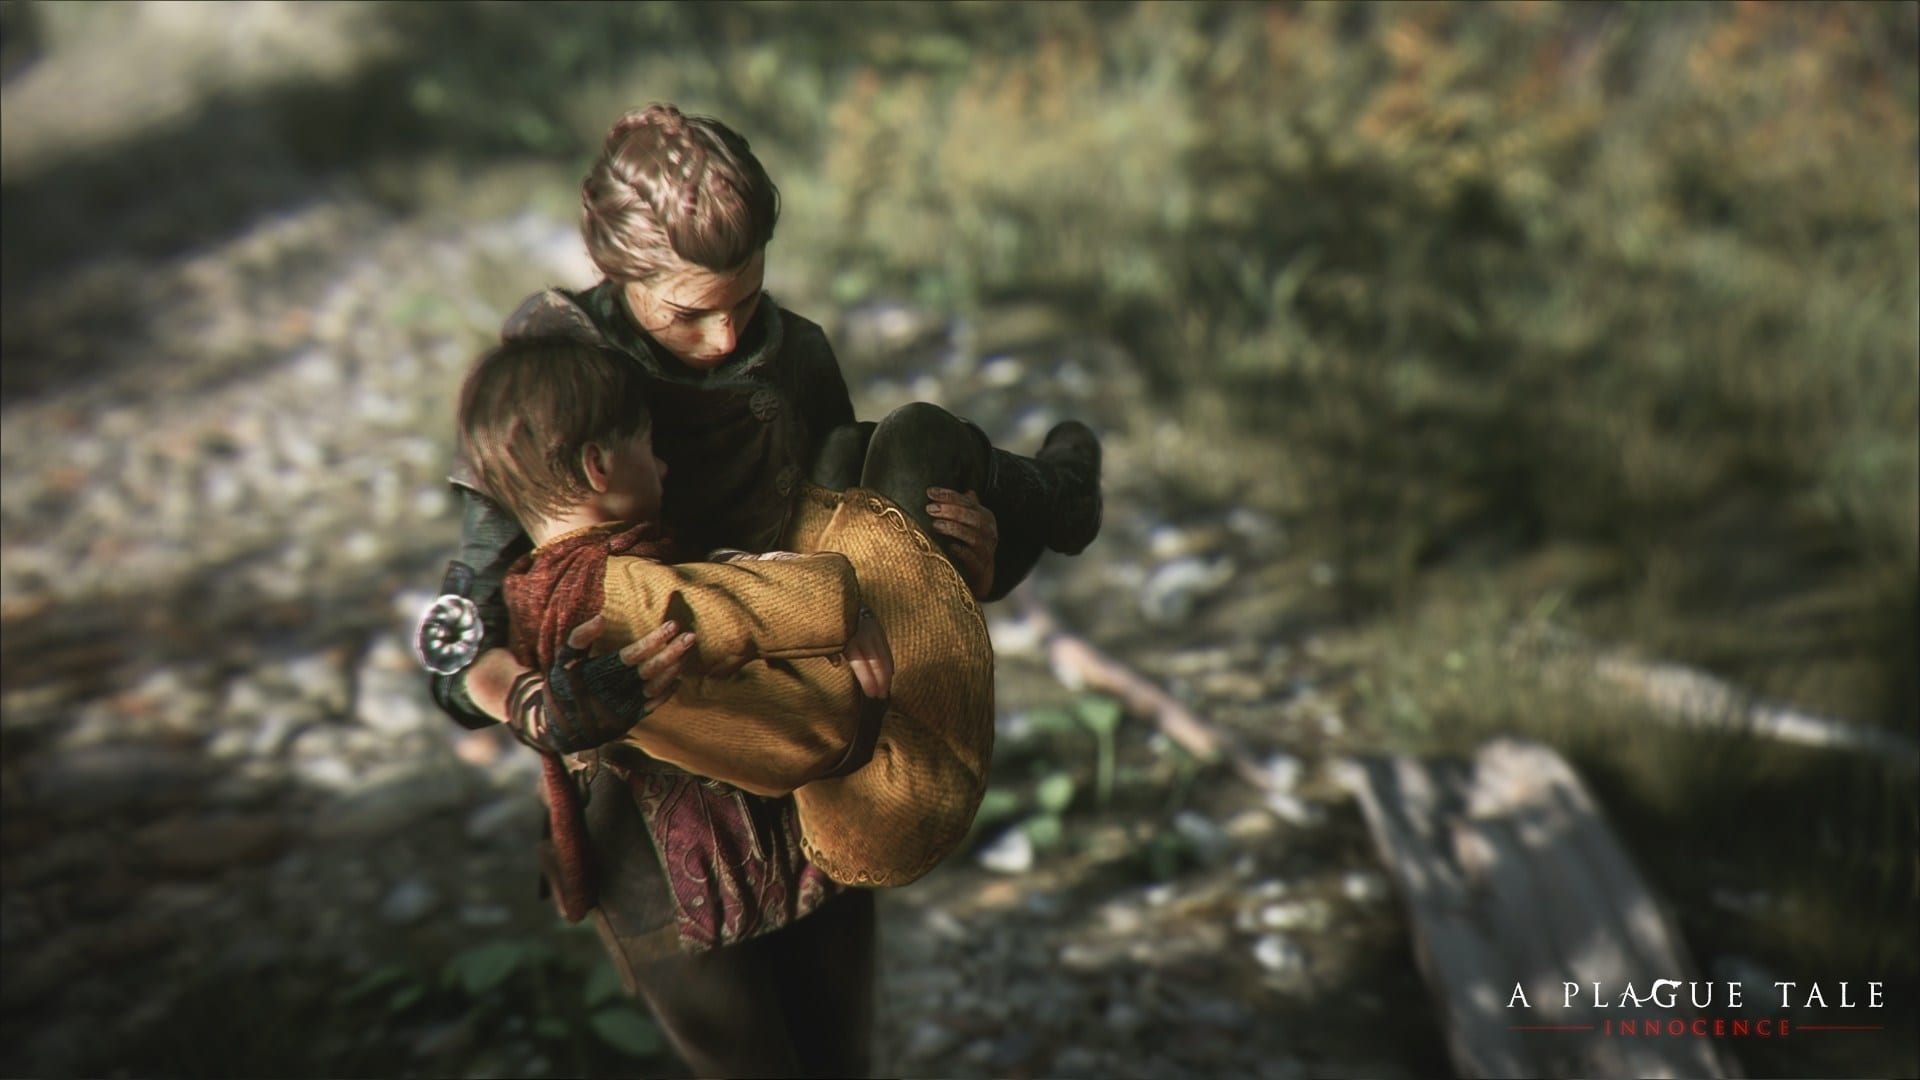 A Plague Tale Requiem Release Date And Every Detail What We Know So Far